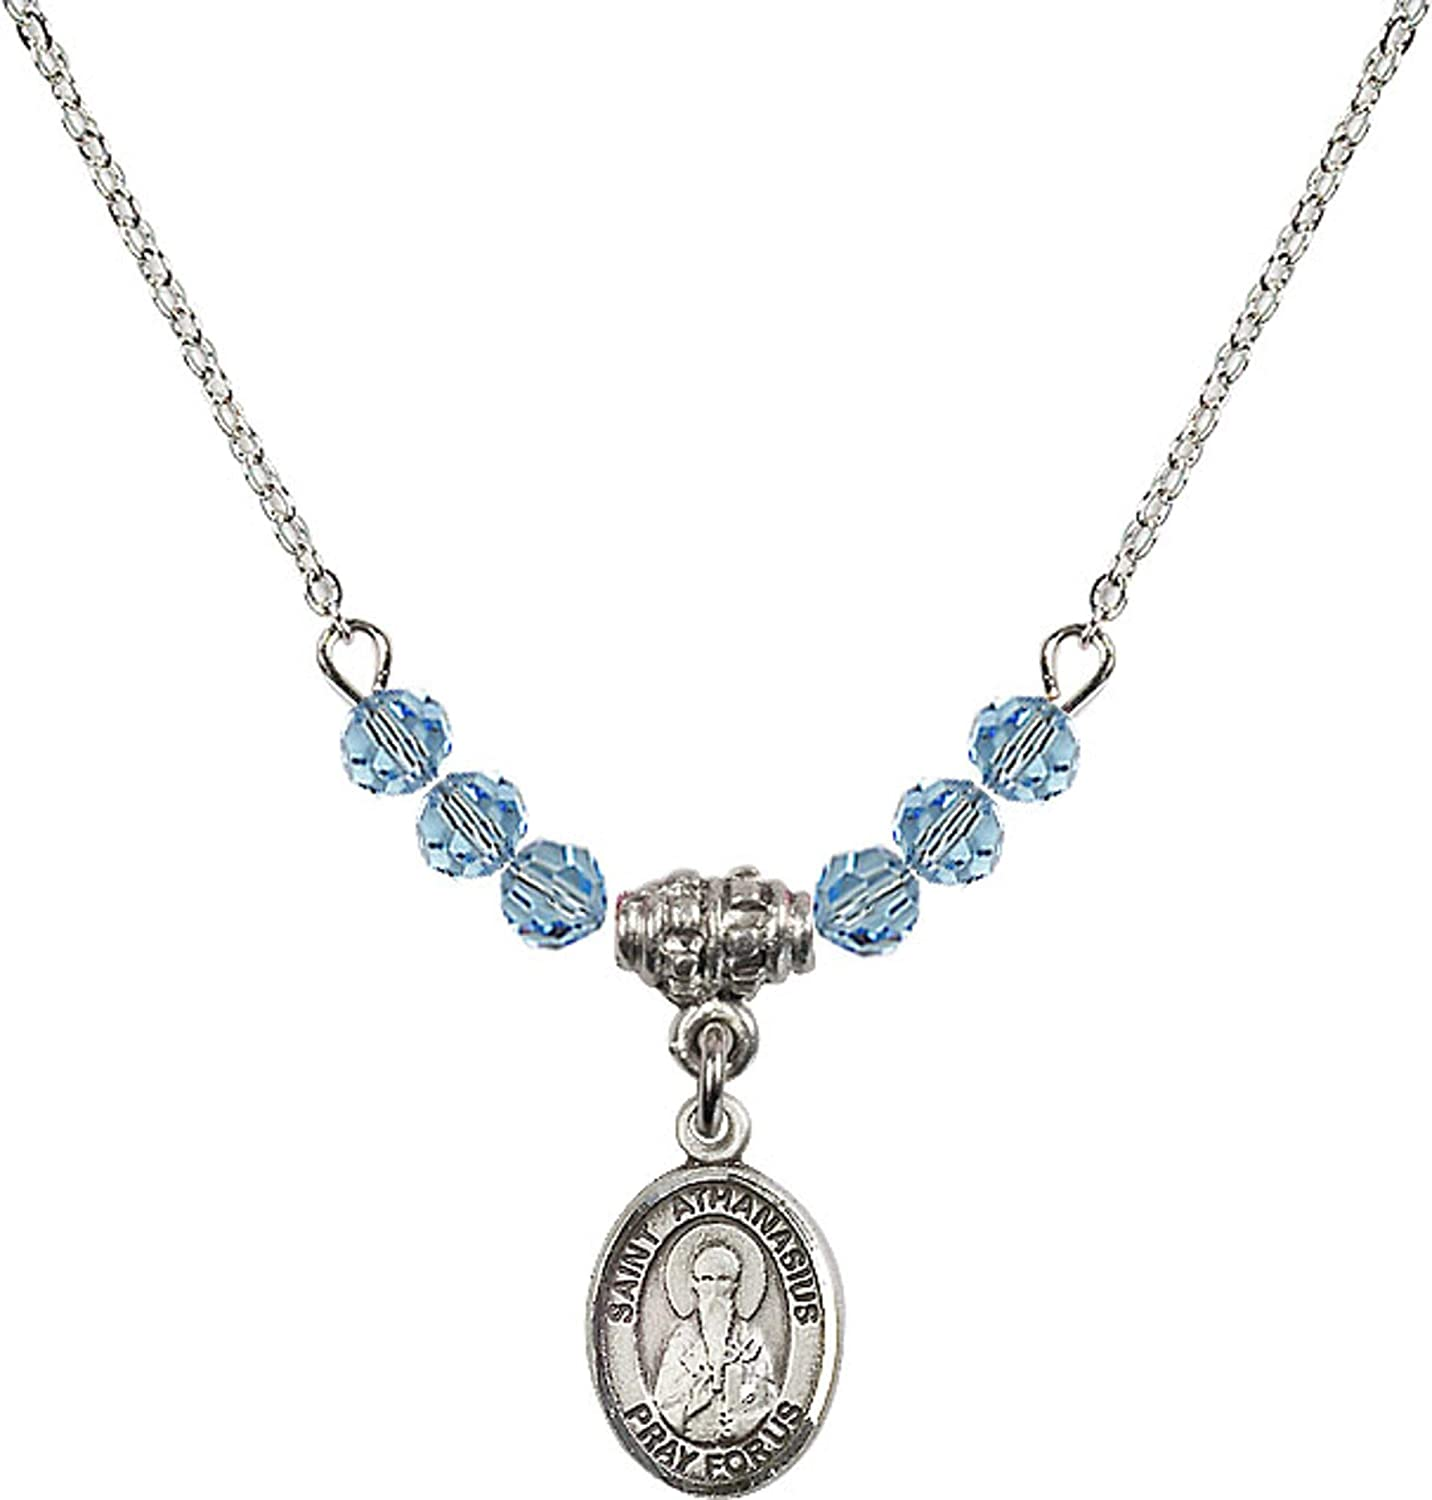 Bonyak Jewelry 18 Inch Rhodium Plated Necklace w// 4mm Blue March Birth Month Stone Beads and Saint Athanasius Charm